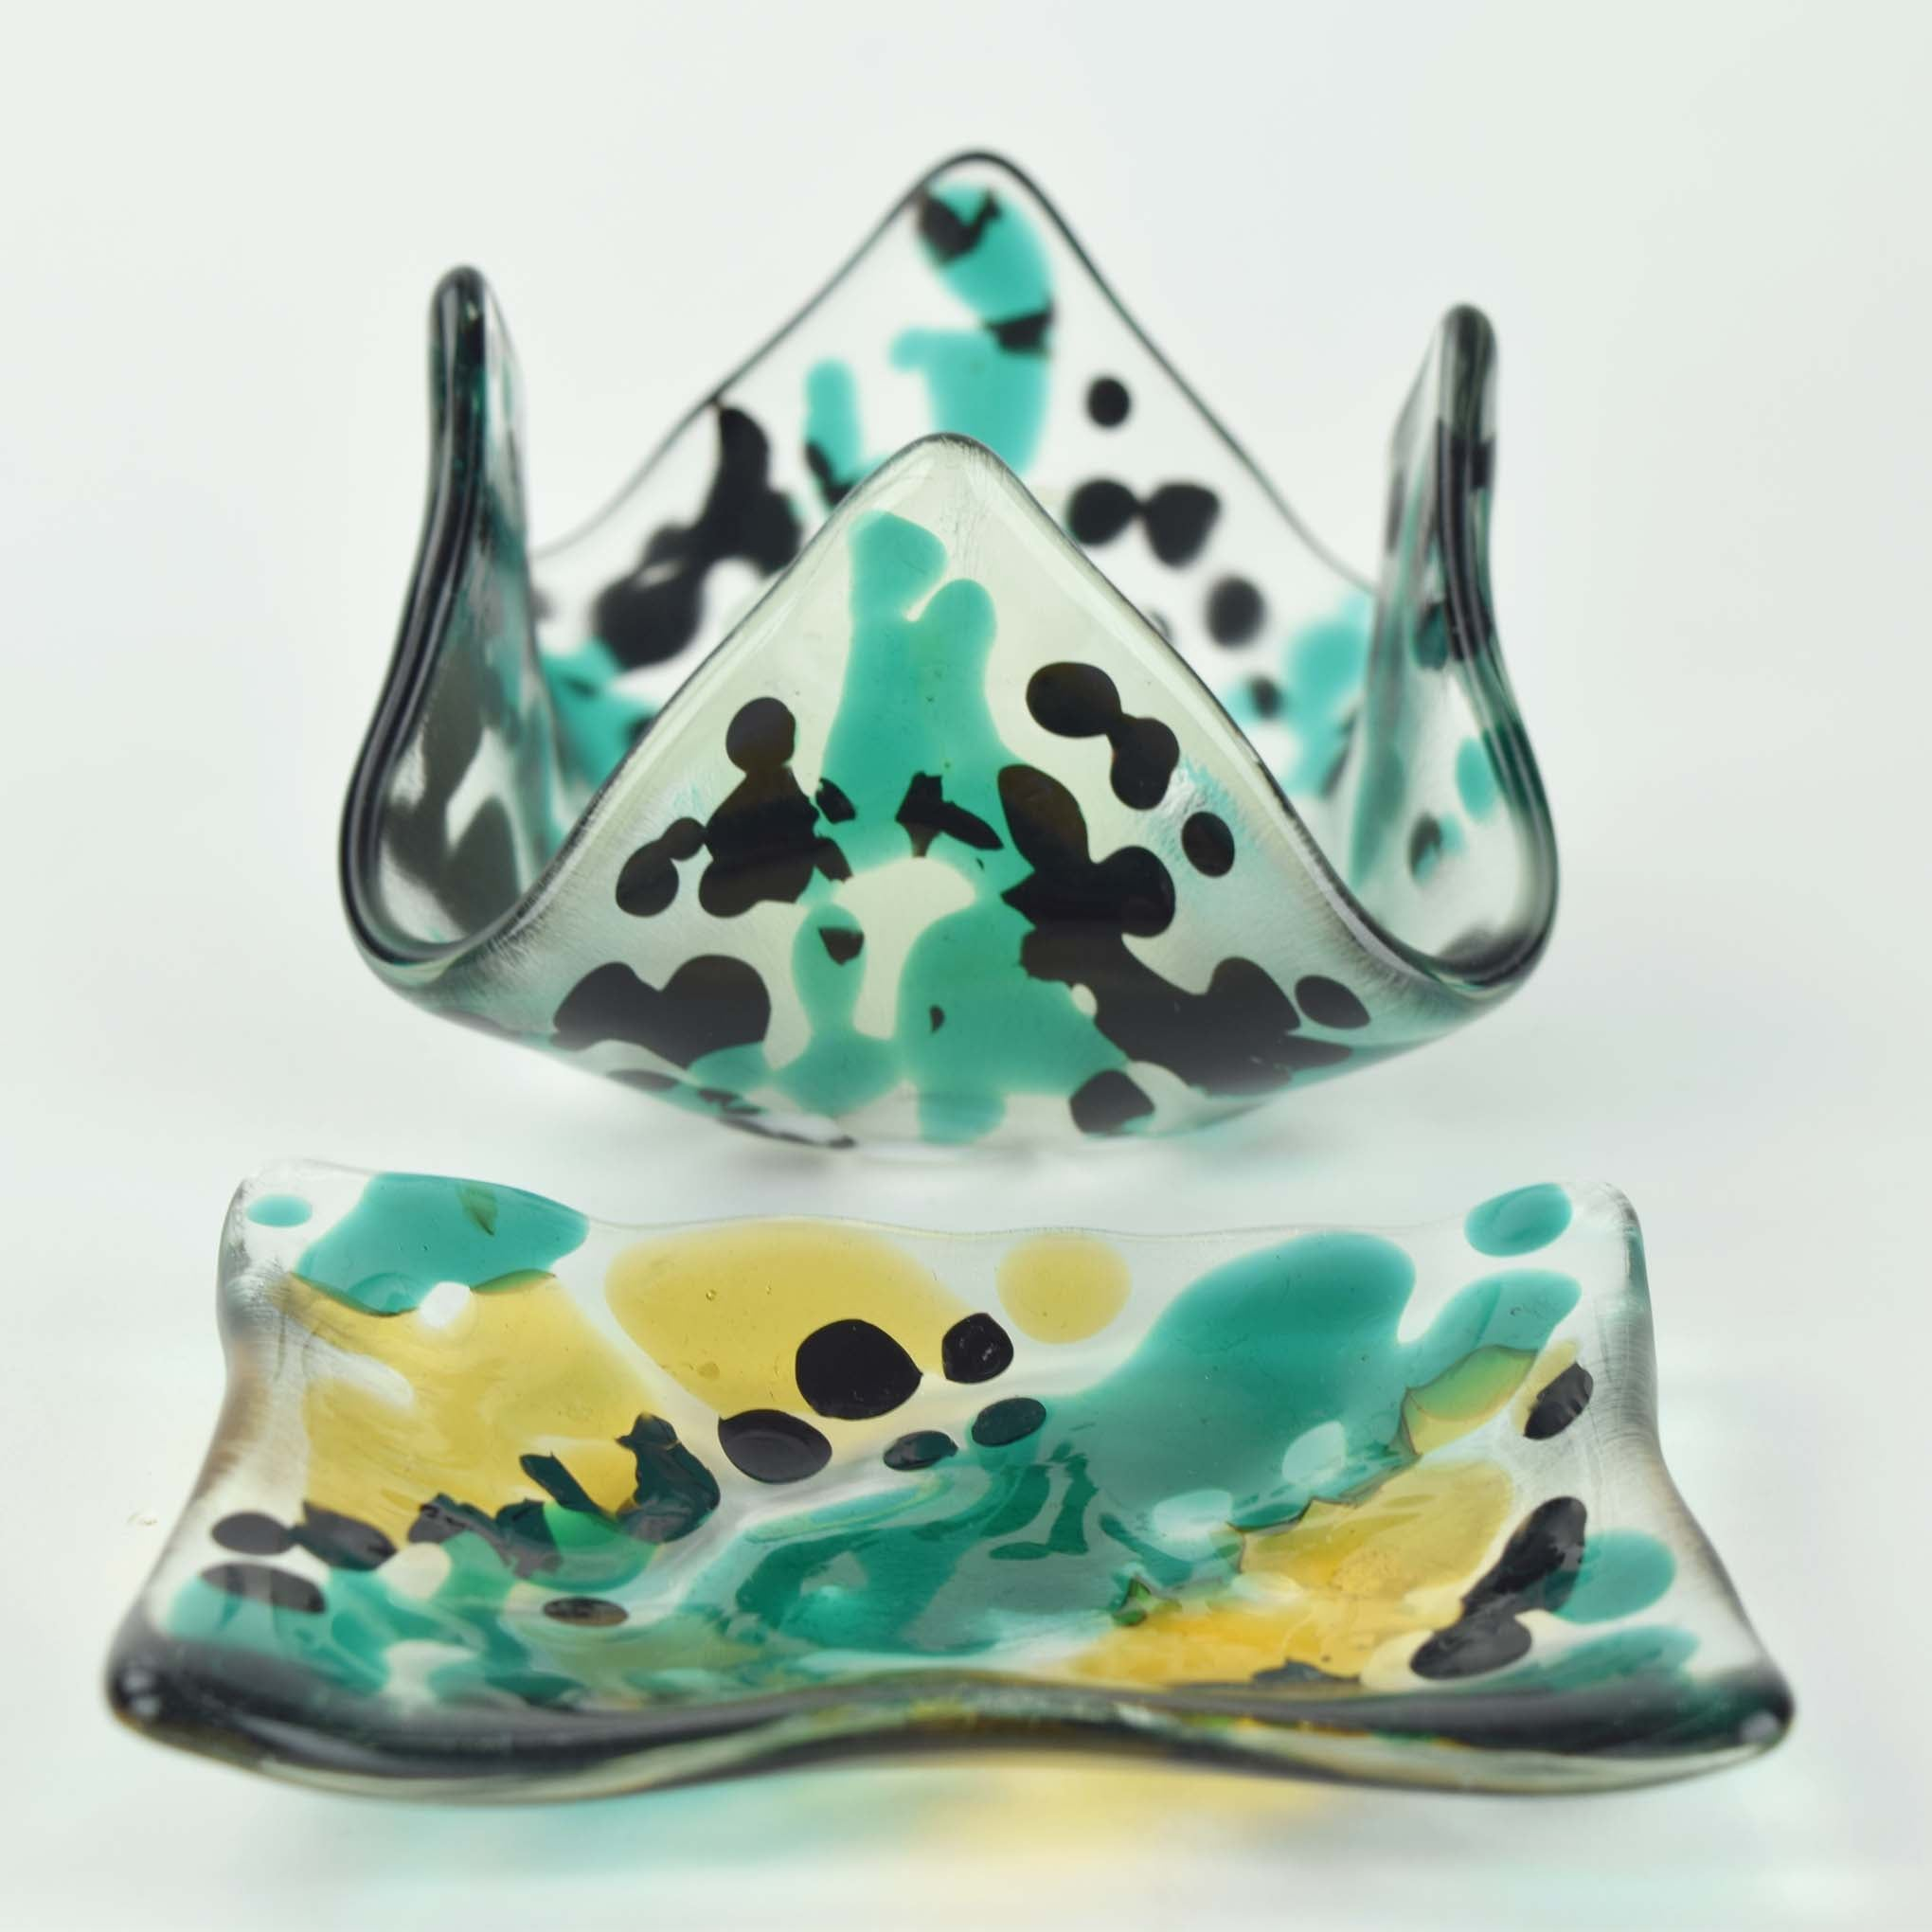 Teal and Black Candle holder and Small Dish